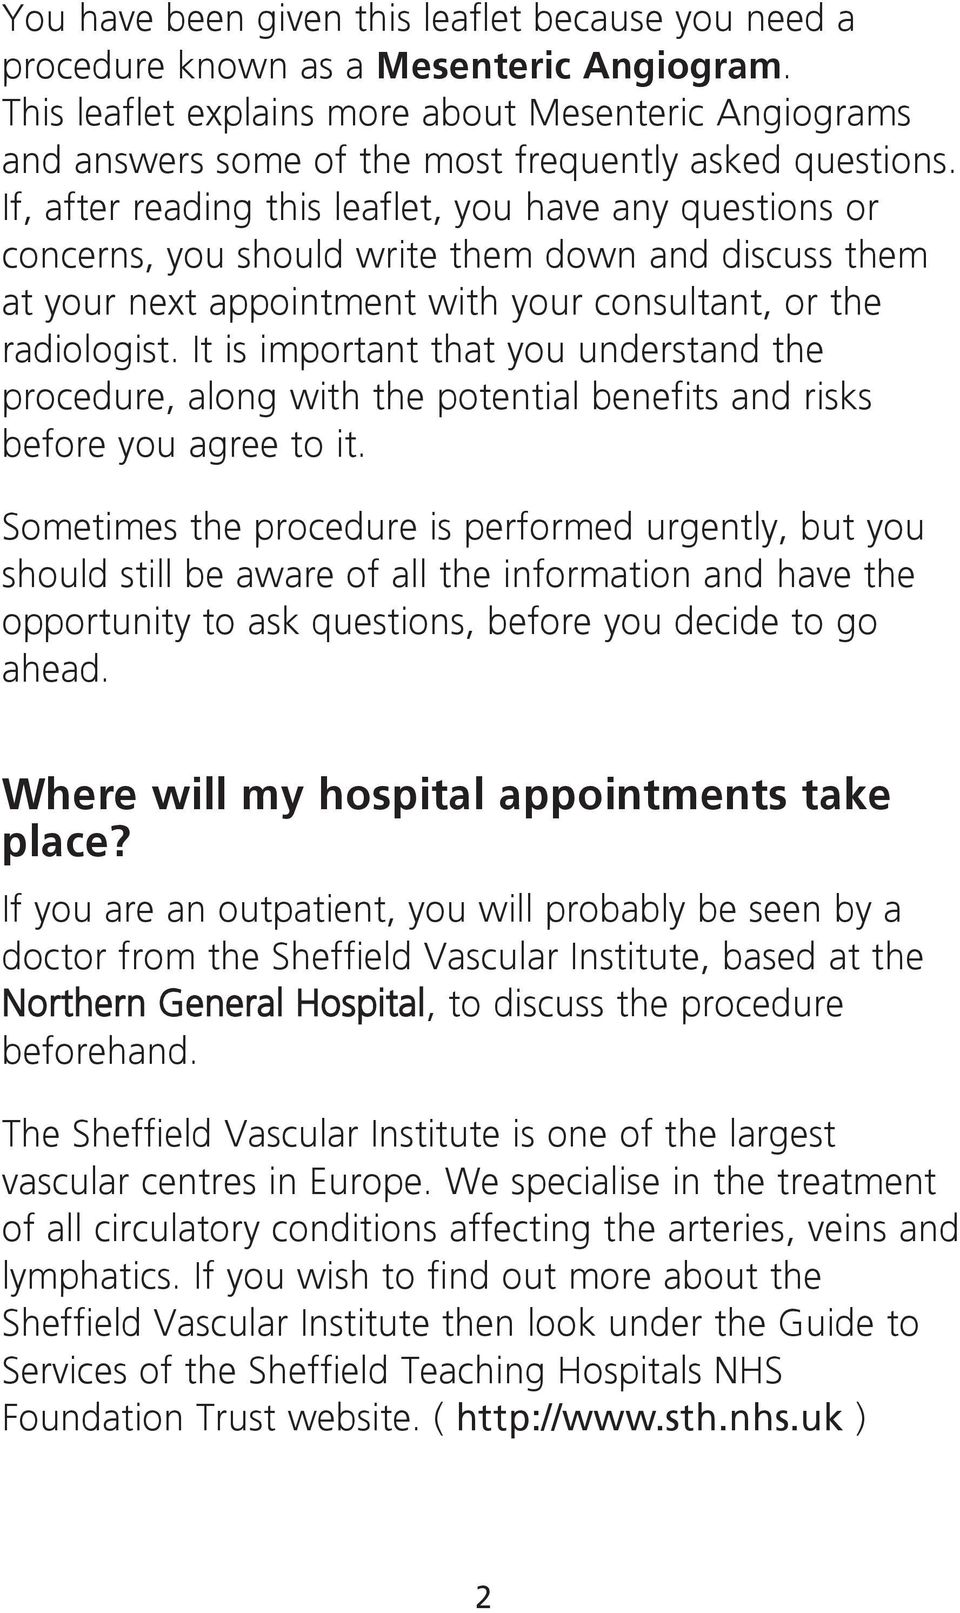 If, after reading this leaflet, you have any questions or concerns, you should write them down and discuss them at your next appointment with your consultant, or the radiologist.